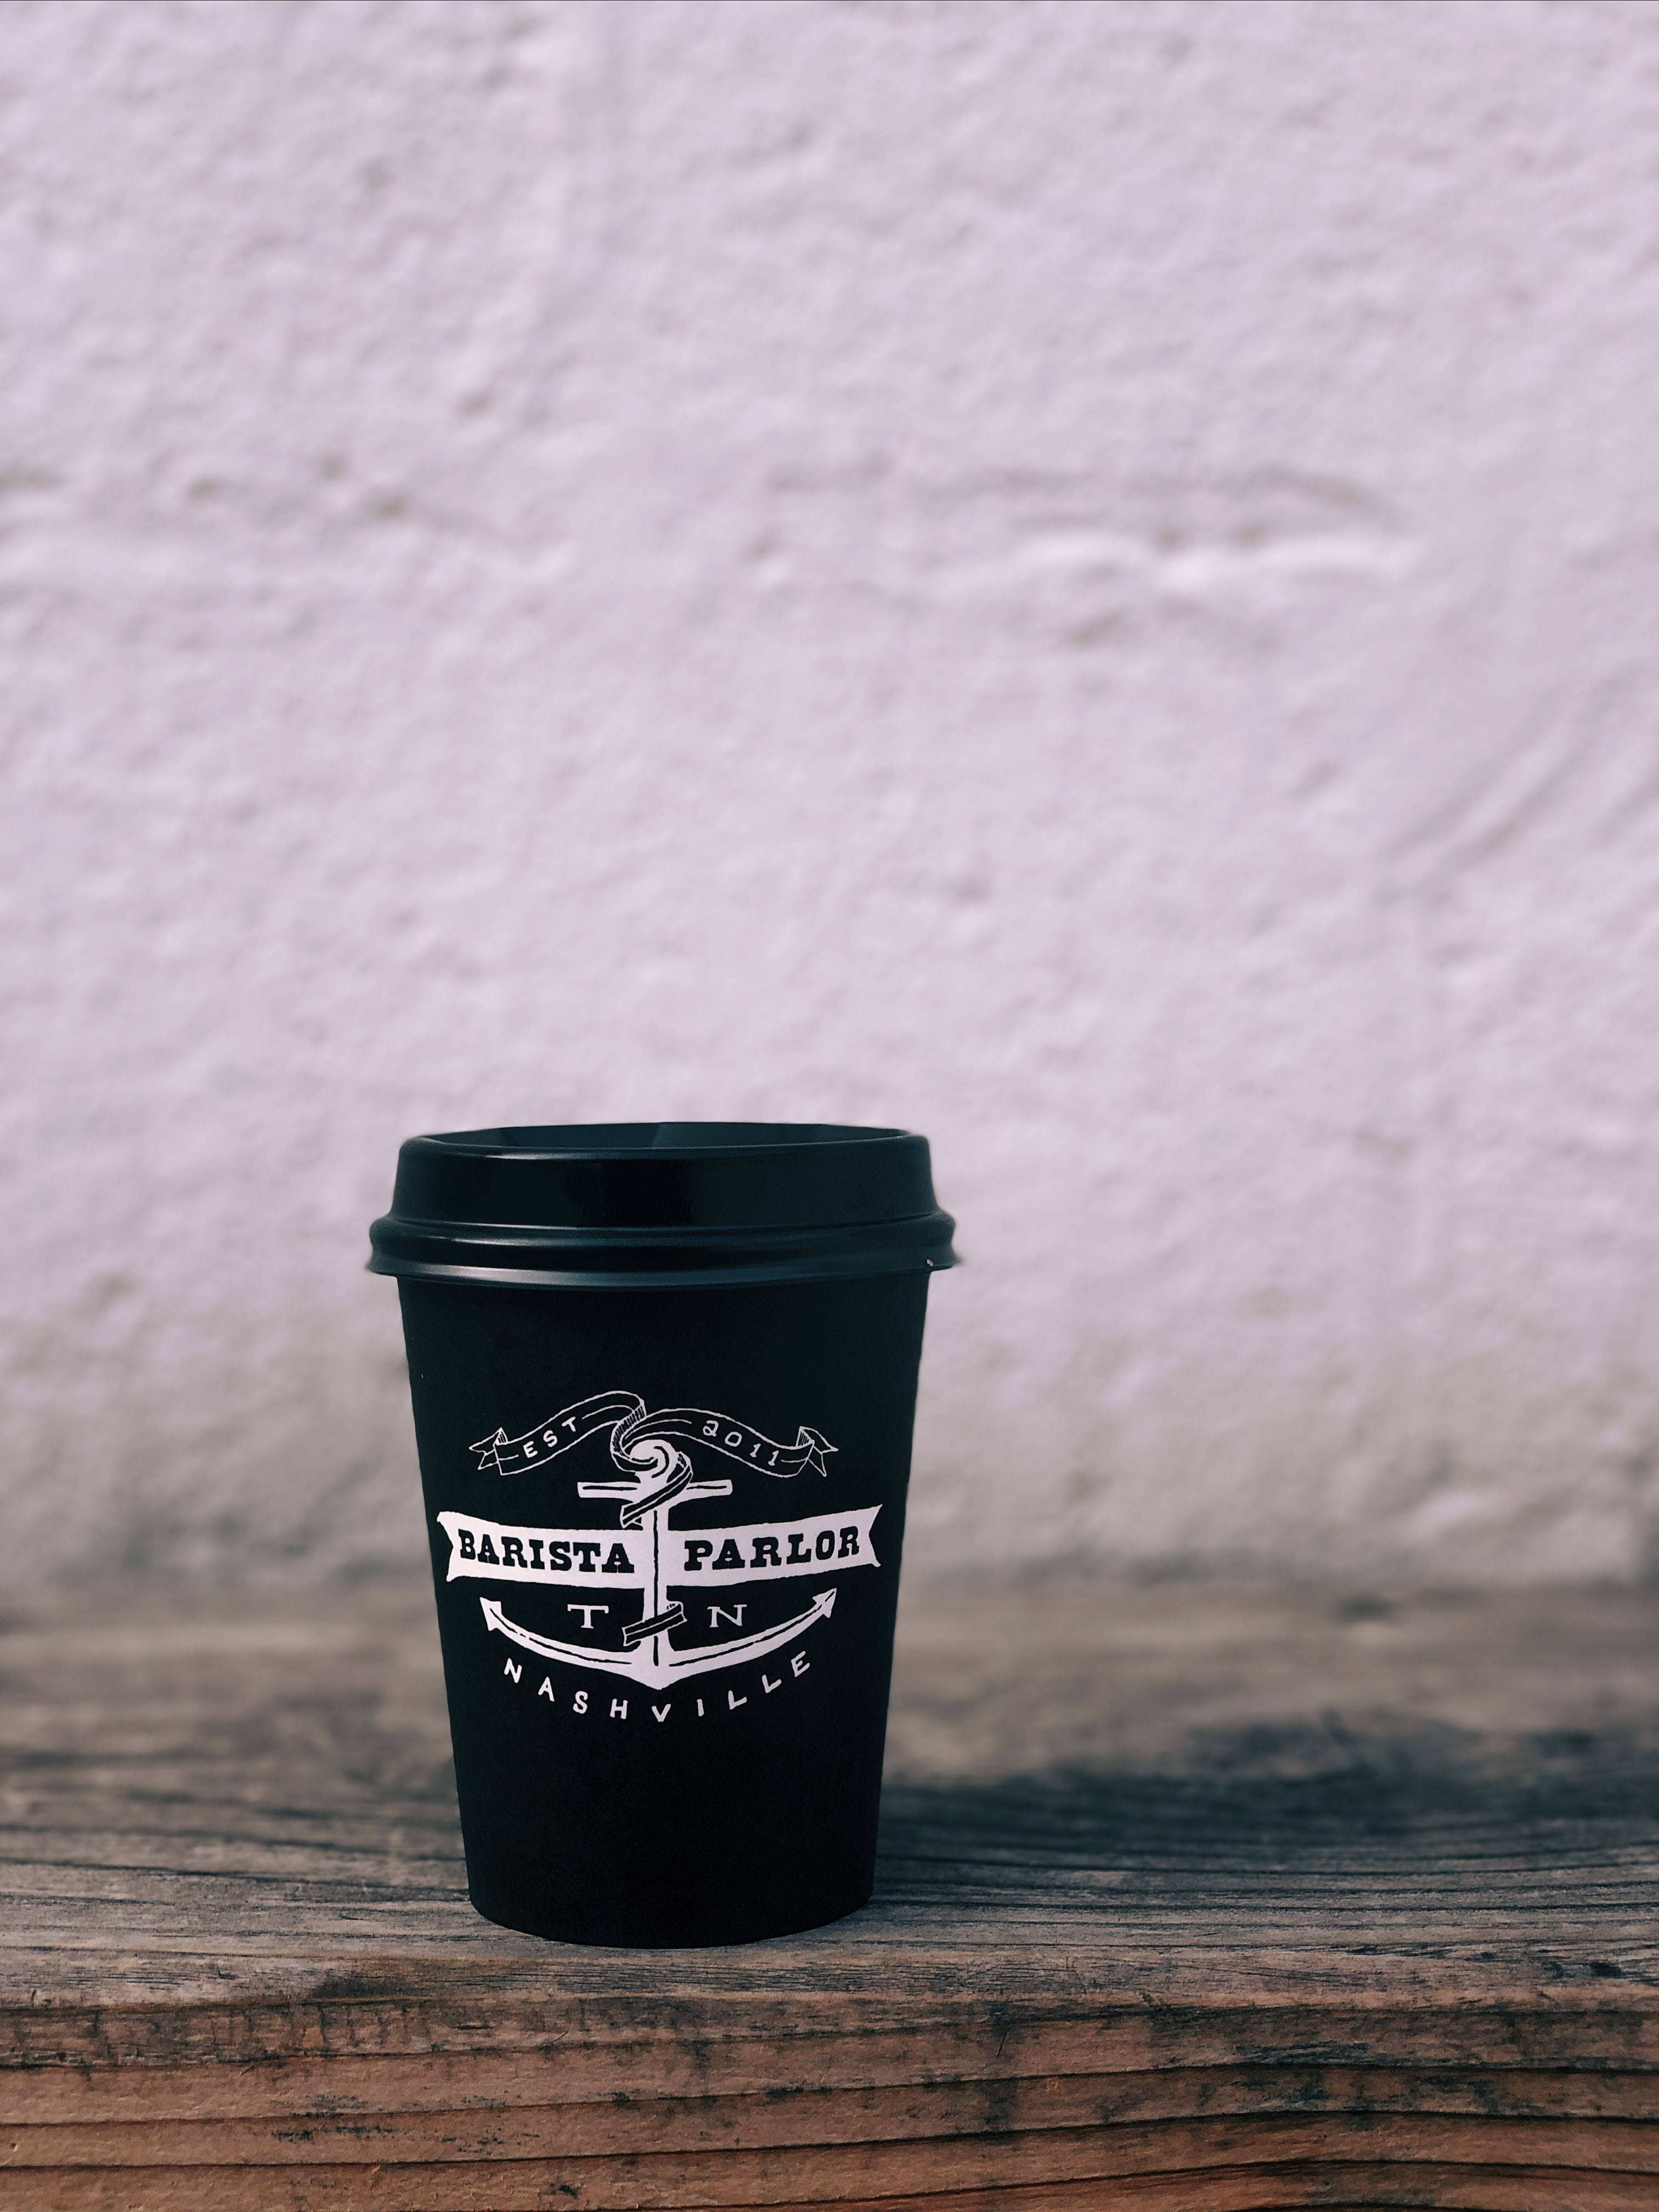 black and white Barista Parlor disposable cup on table